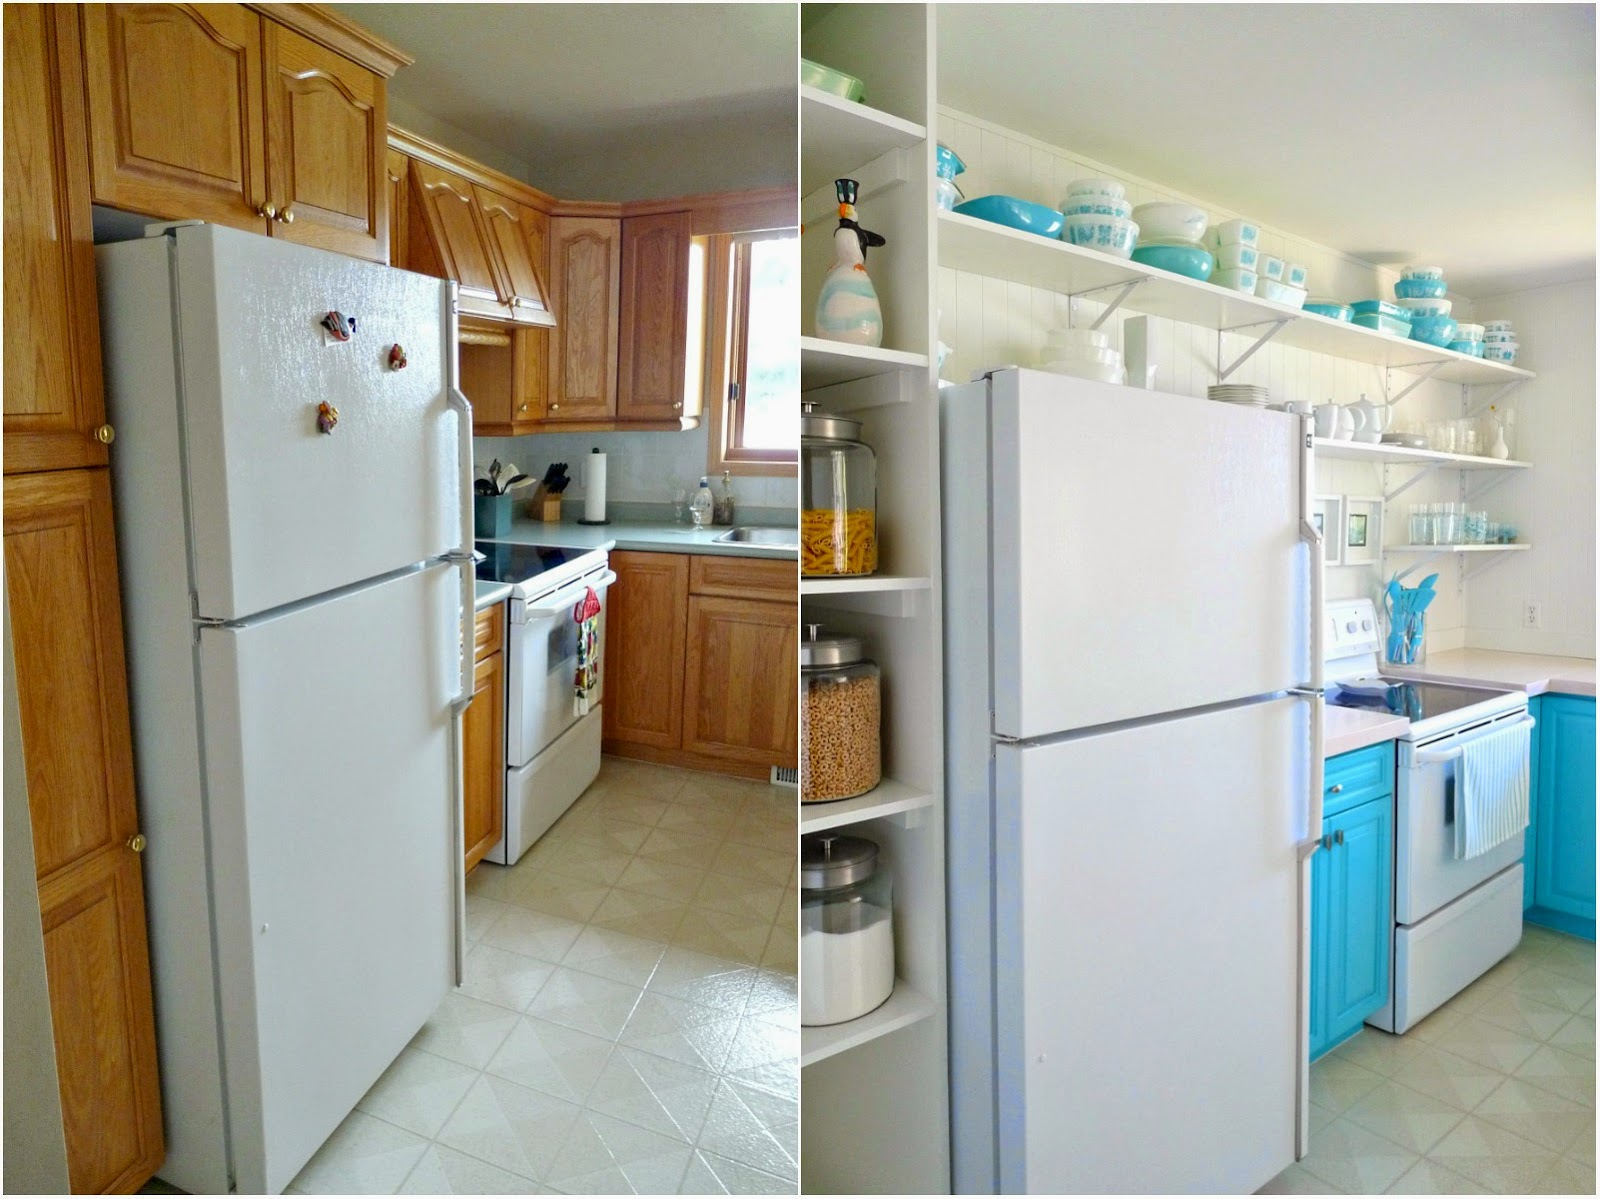 Kitchen Makeovers On A Budget Before And After a budget-friendly turquoise kitchen makeover | dans le lakehouse